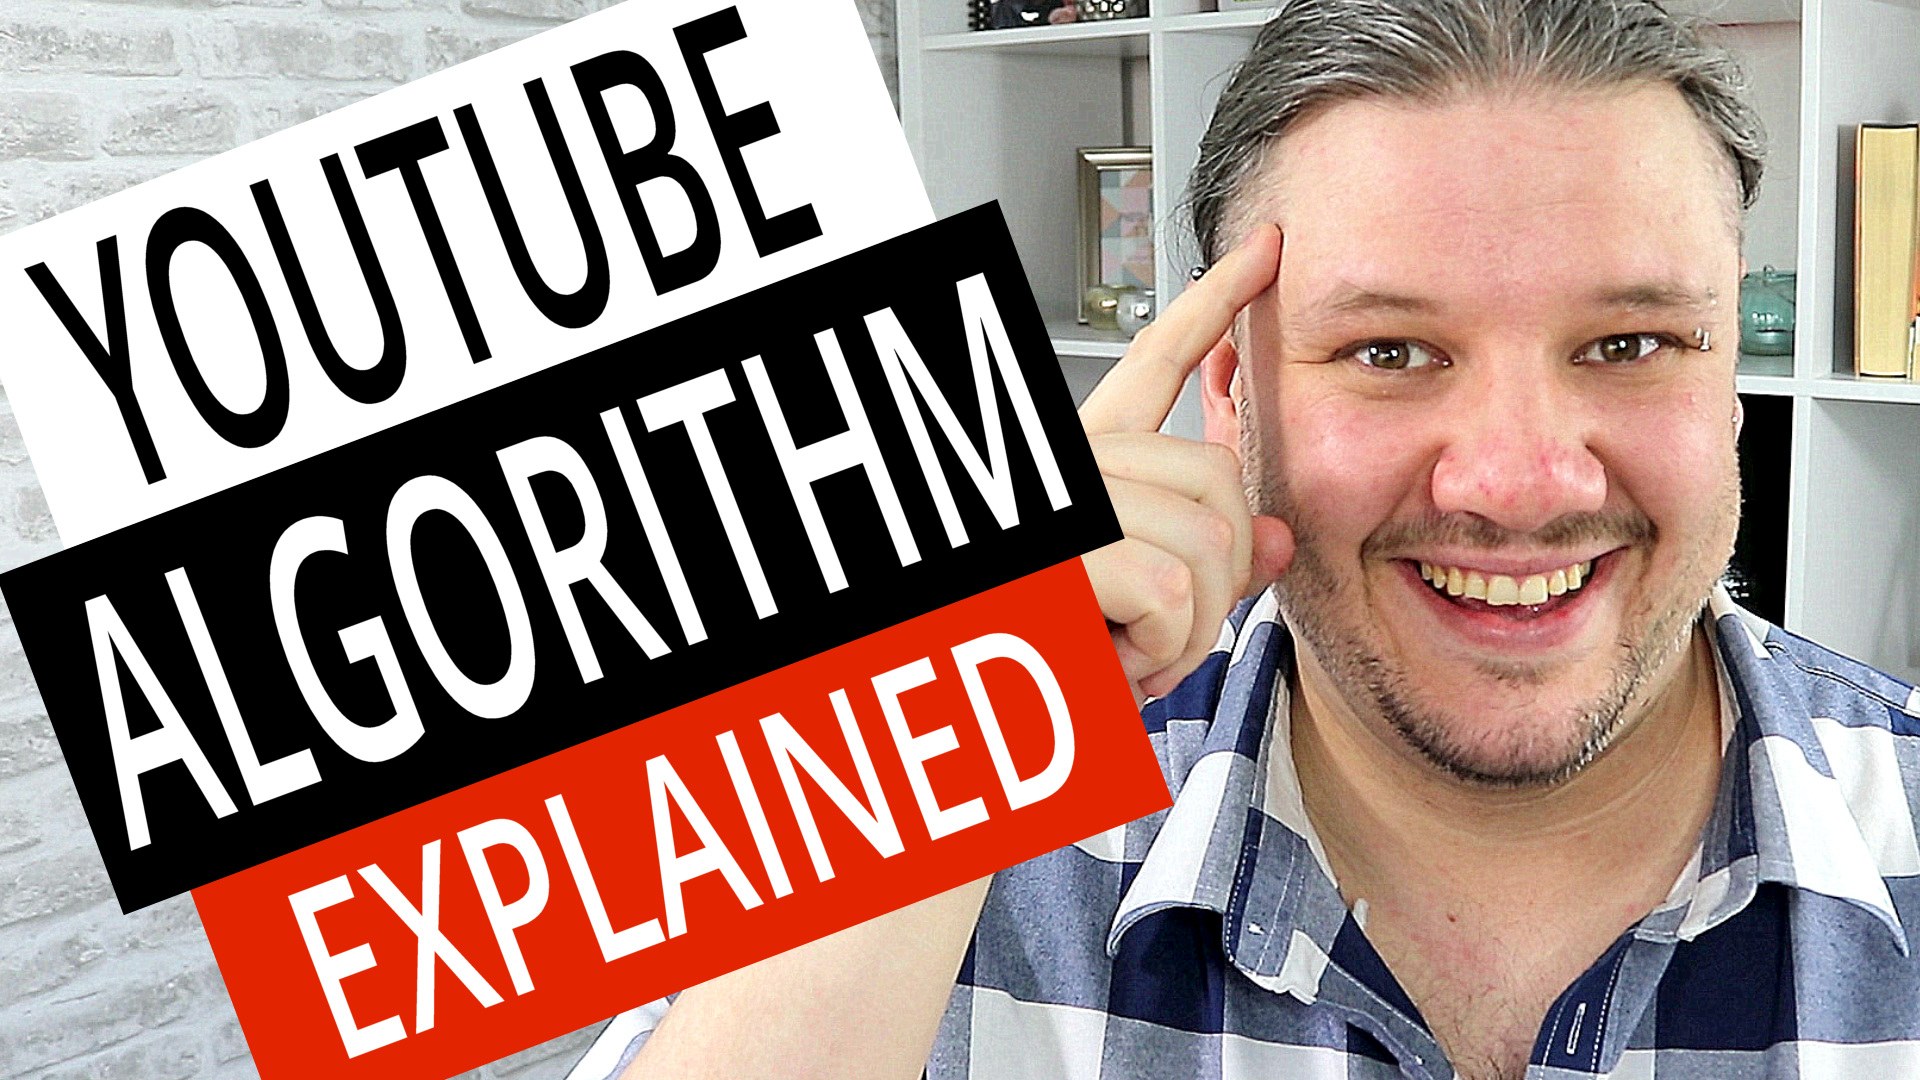 The 2019 YouTube Algorithm Explained - DEEP DIVE, matt haycox,funding guru,matt haycox funding guru,funding guru matt haycox,matt haycox foundation,How Do You Come Back From Bankruptcy,How Do To Come Back From Bankruptcy,bankrupt,bankruptcy,bankruptcy vs debt settlement,how bankruptcy works for debtors and creditors,debt,money,brankruptcy uk,how to come back from bankruptcy uk,matt haycox bankruptcy,bankruptcy advice,bankruptcy tips,what is bankruptcy,bankruptcy vs iva,bankruptcy debt